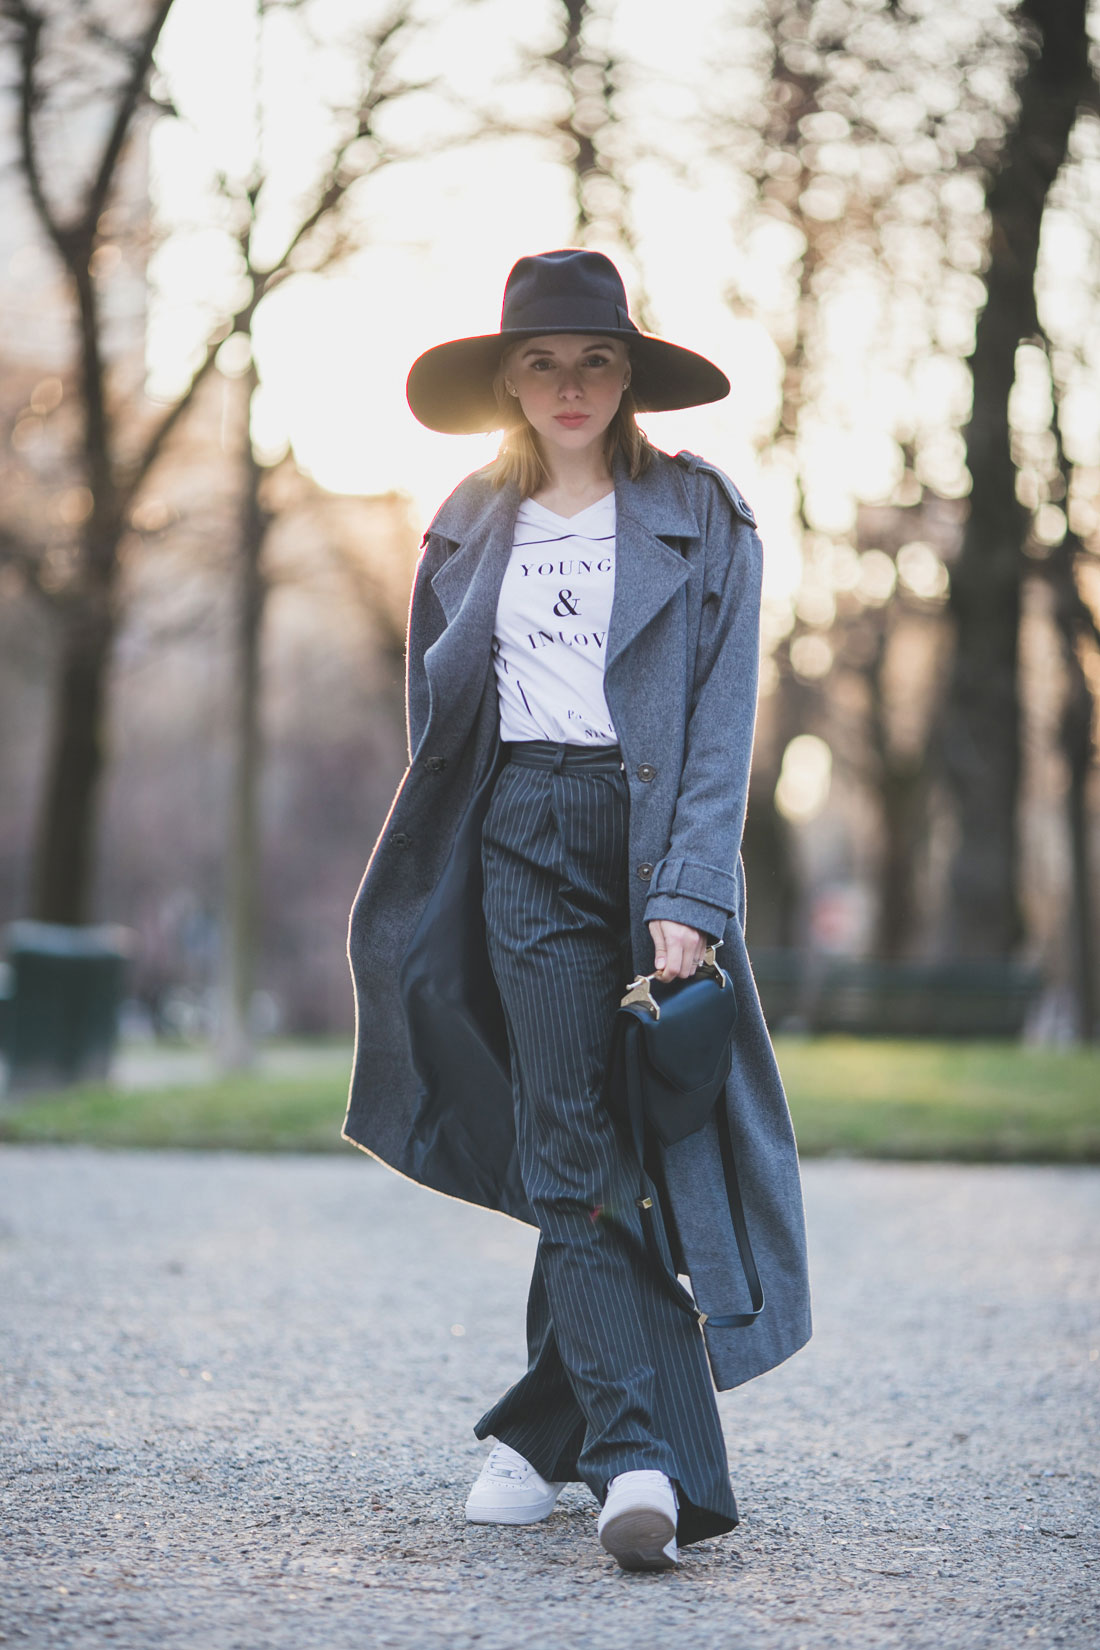 darya-kamalova-thecablook-fashion-lifestyle-russian-italian-blogger-wears-asos-total-look-grey-long-coat-with-nike-white-air-force-and-m2malletier-black-bag-on-mfw-milan-fashion-week-2015-1292